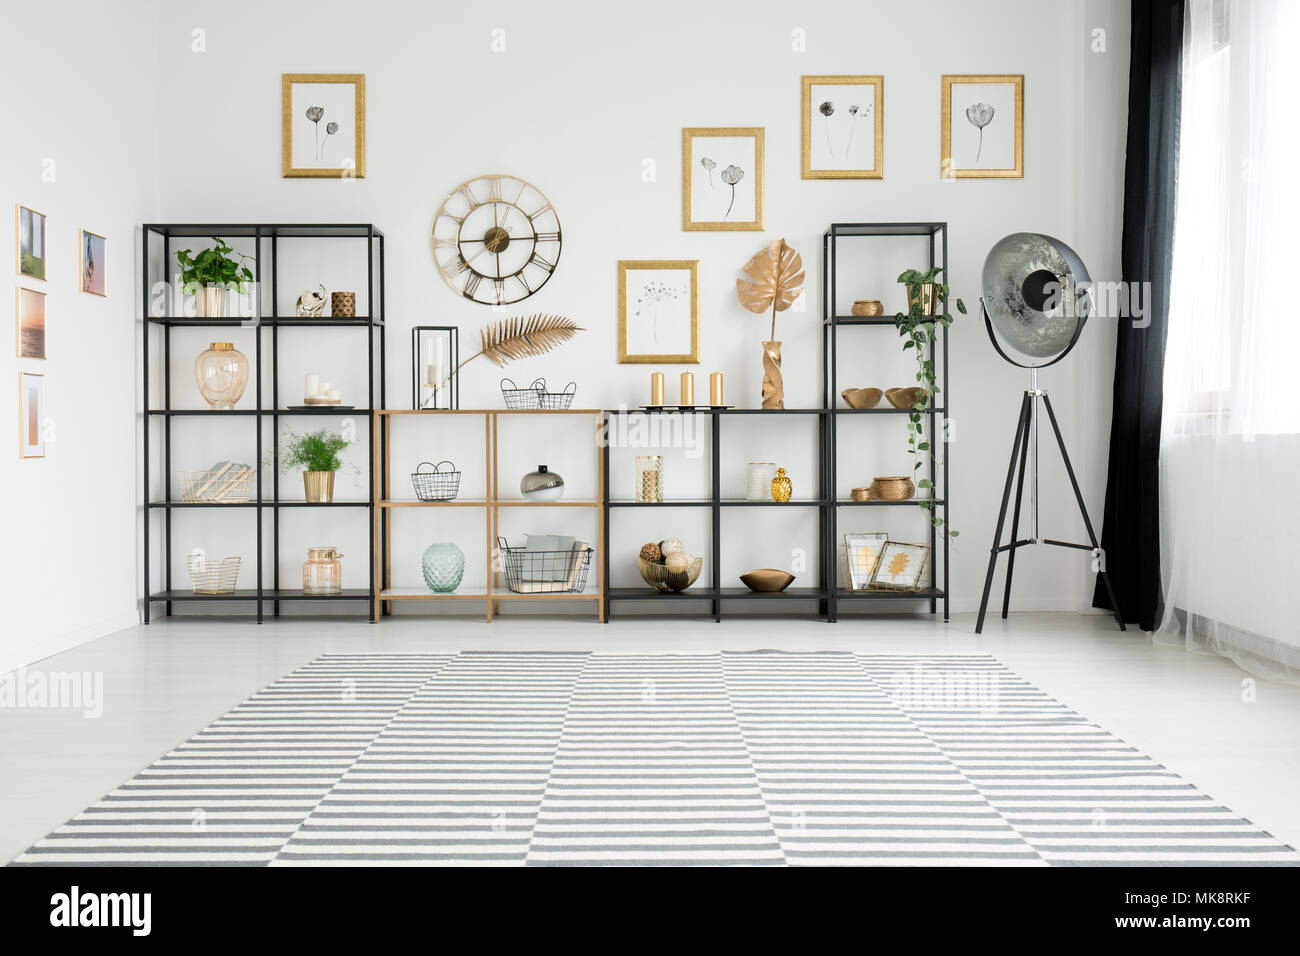 Spacious living room interior with lots of decorations on gold and black racks standing against a white wall with pictures gallery Stock Photo